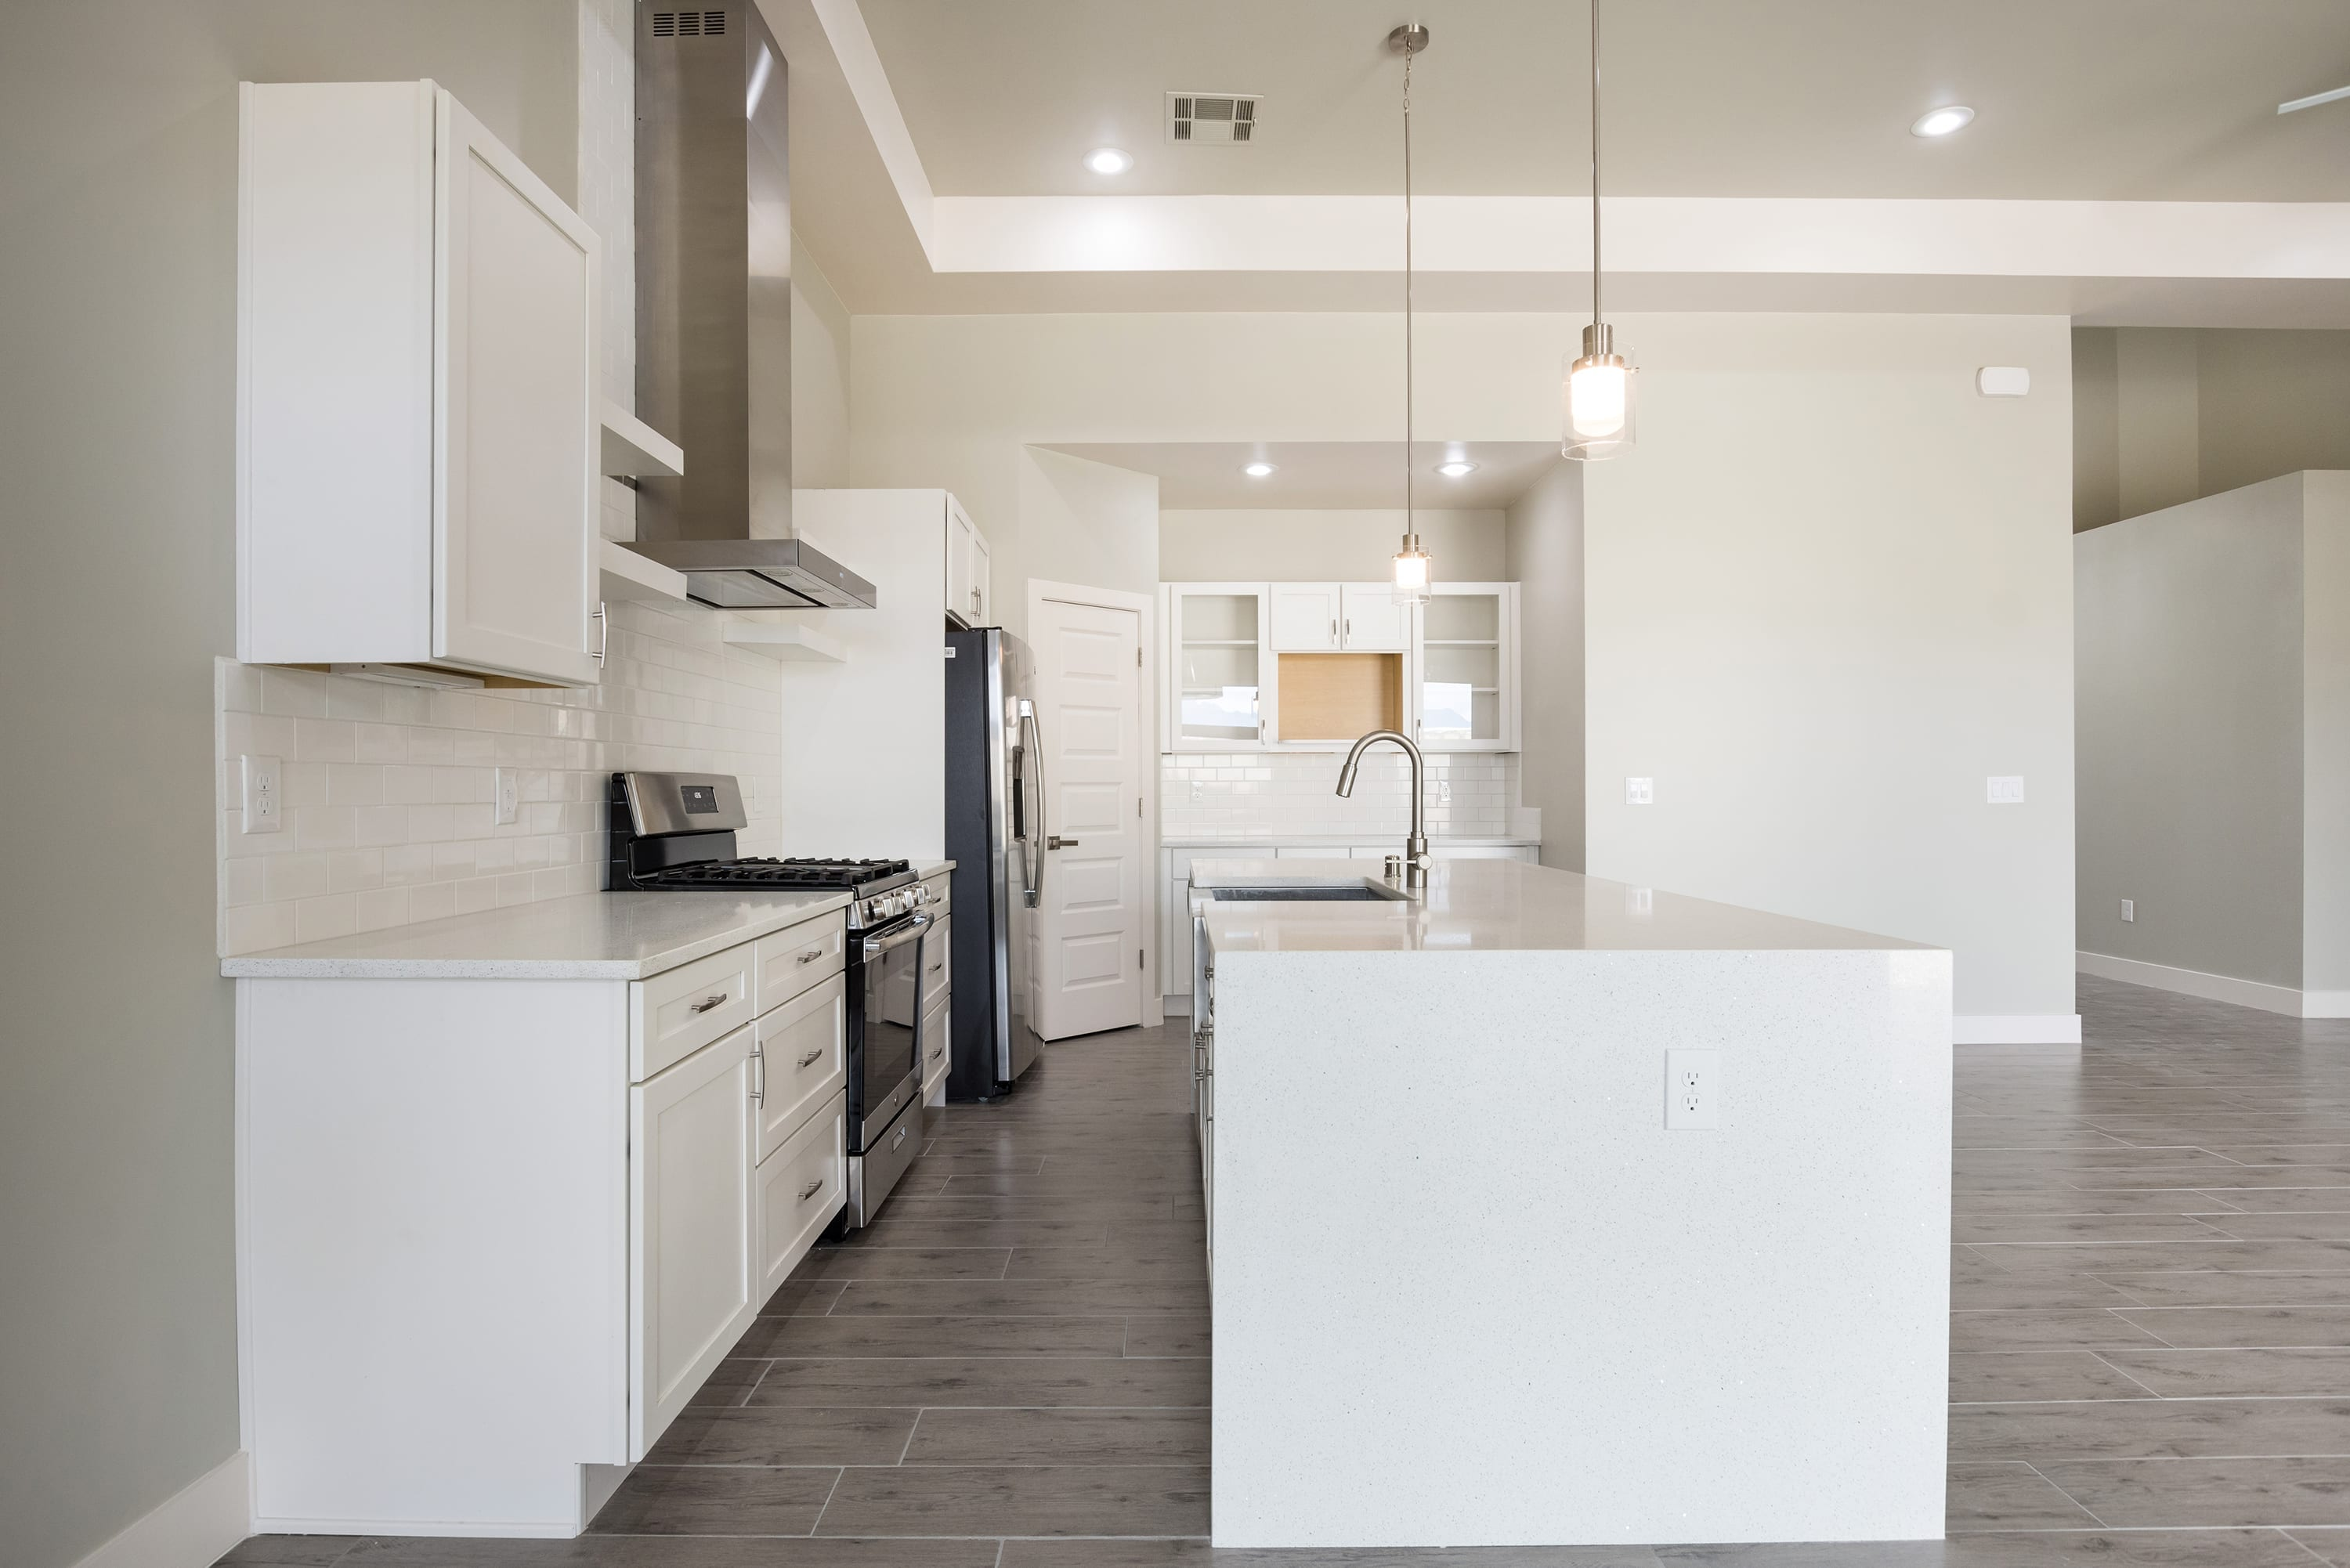 Interior Shot of kitchen in 2884 Maddox contemporary home